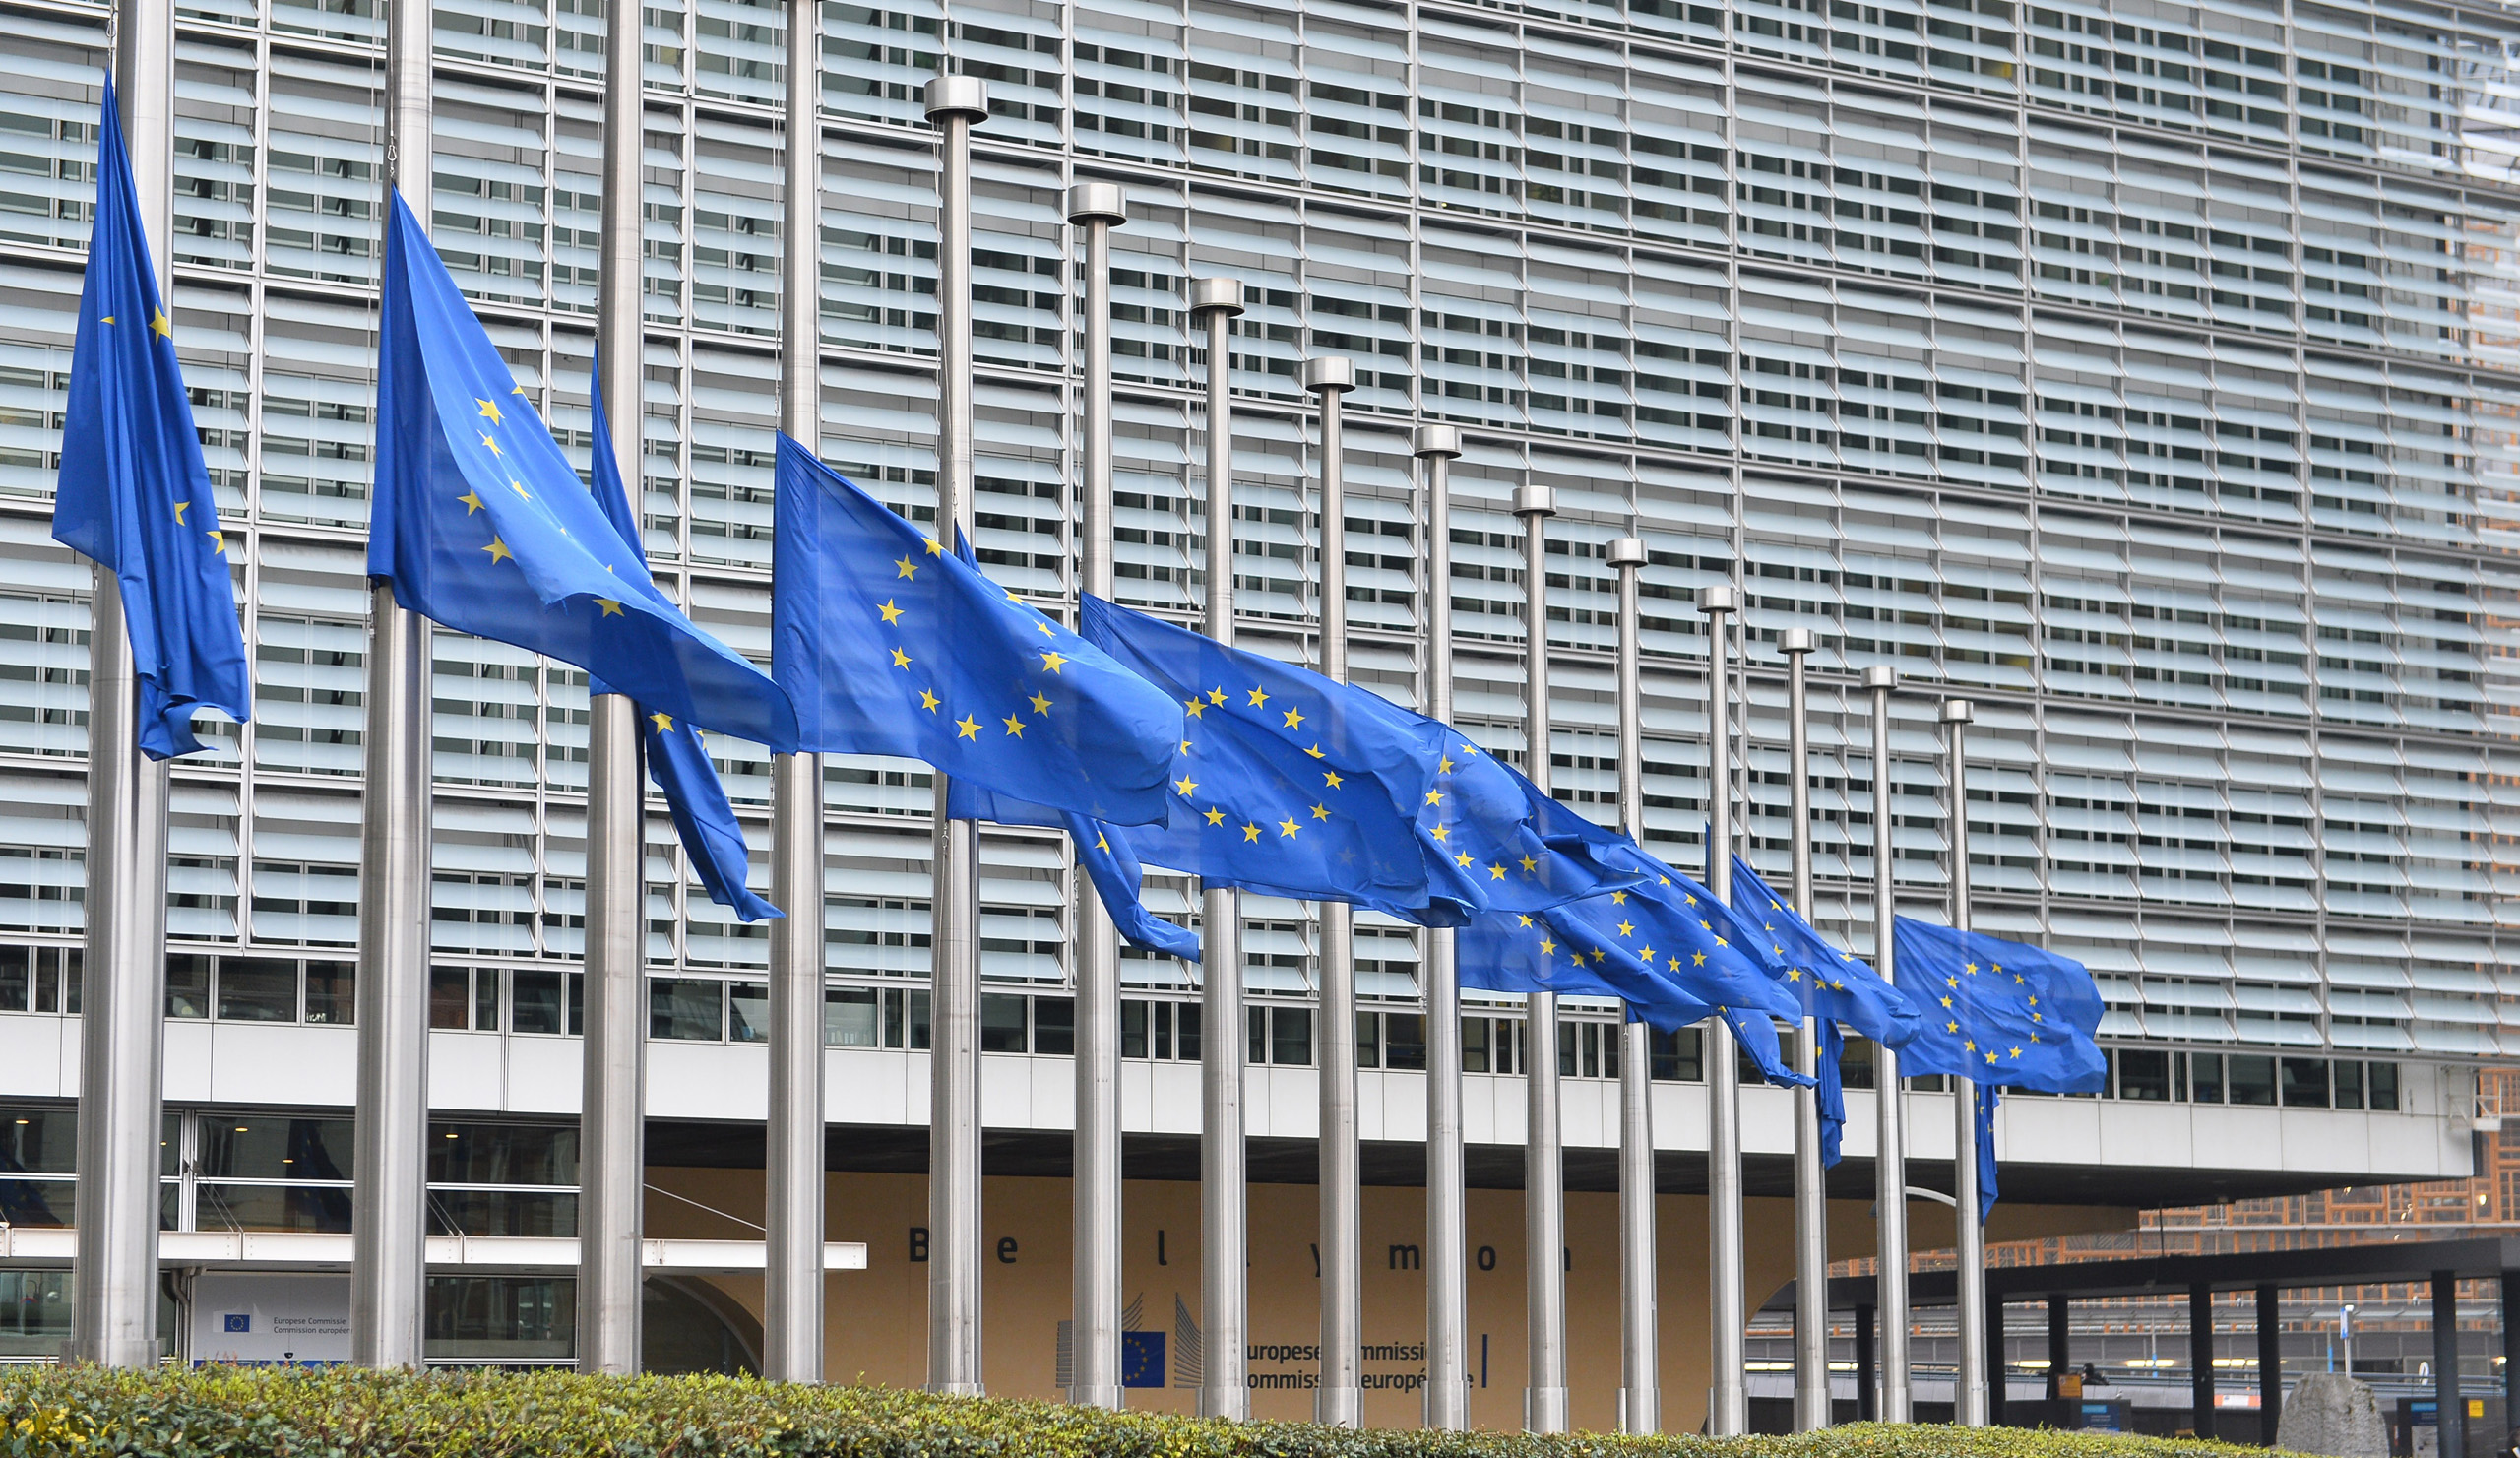 European flags in front of the EU Berlaymont building in the centre of Brussels on March 23, 2016.